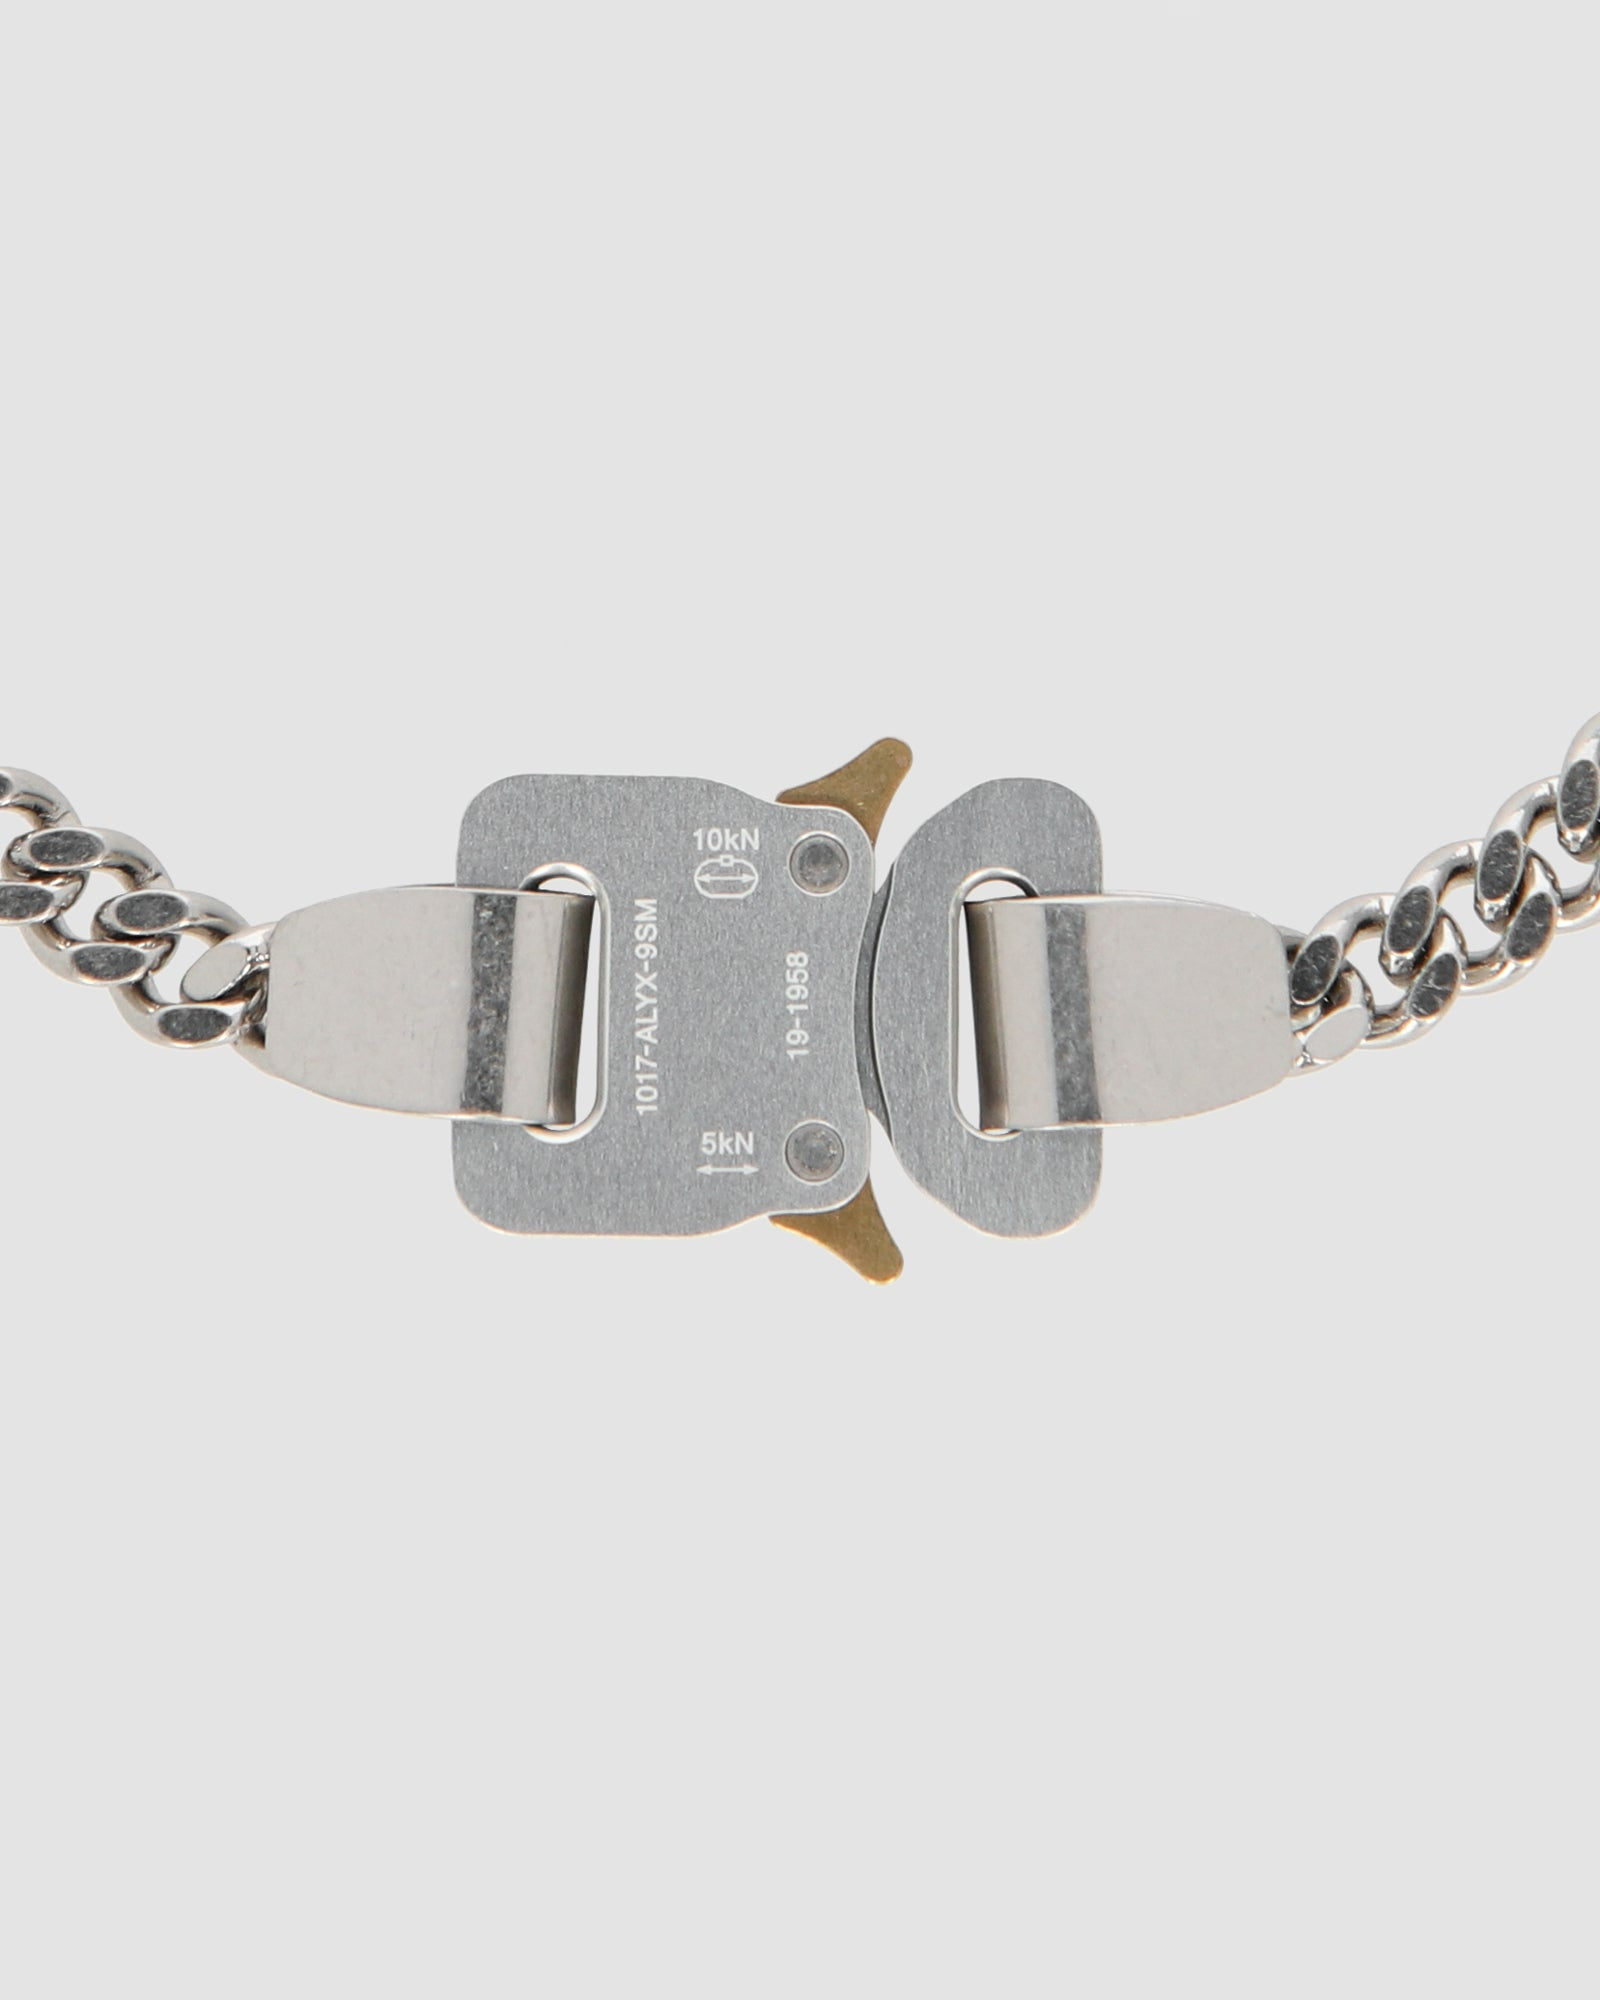 CLASSIC CHAINLINK NECKLACE WITH EXCLUSIVE CHARM - IT